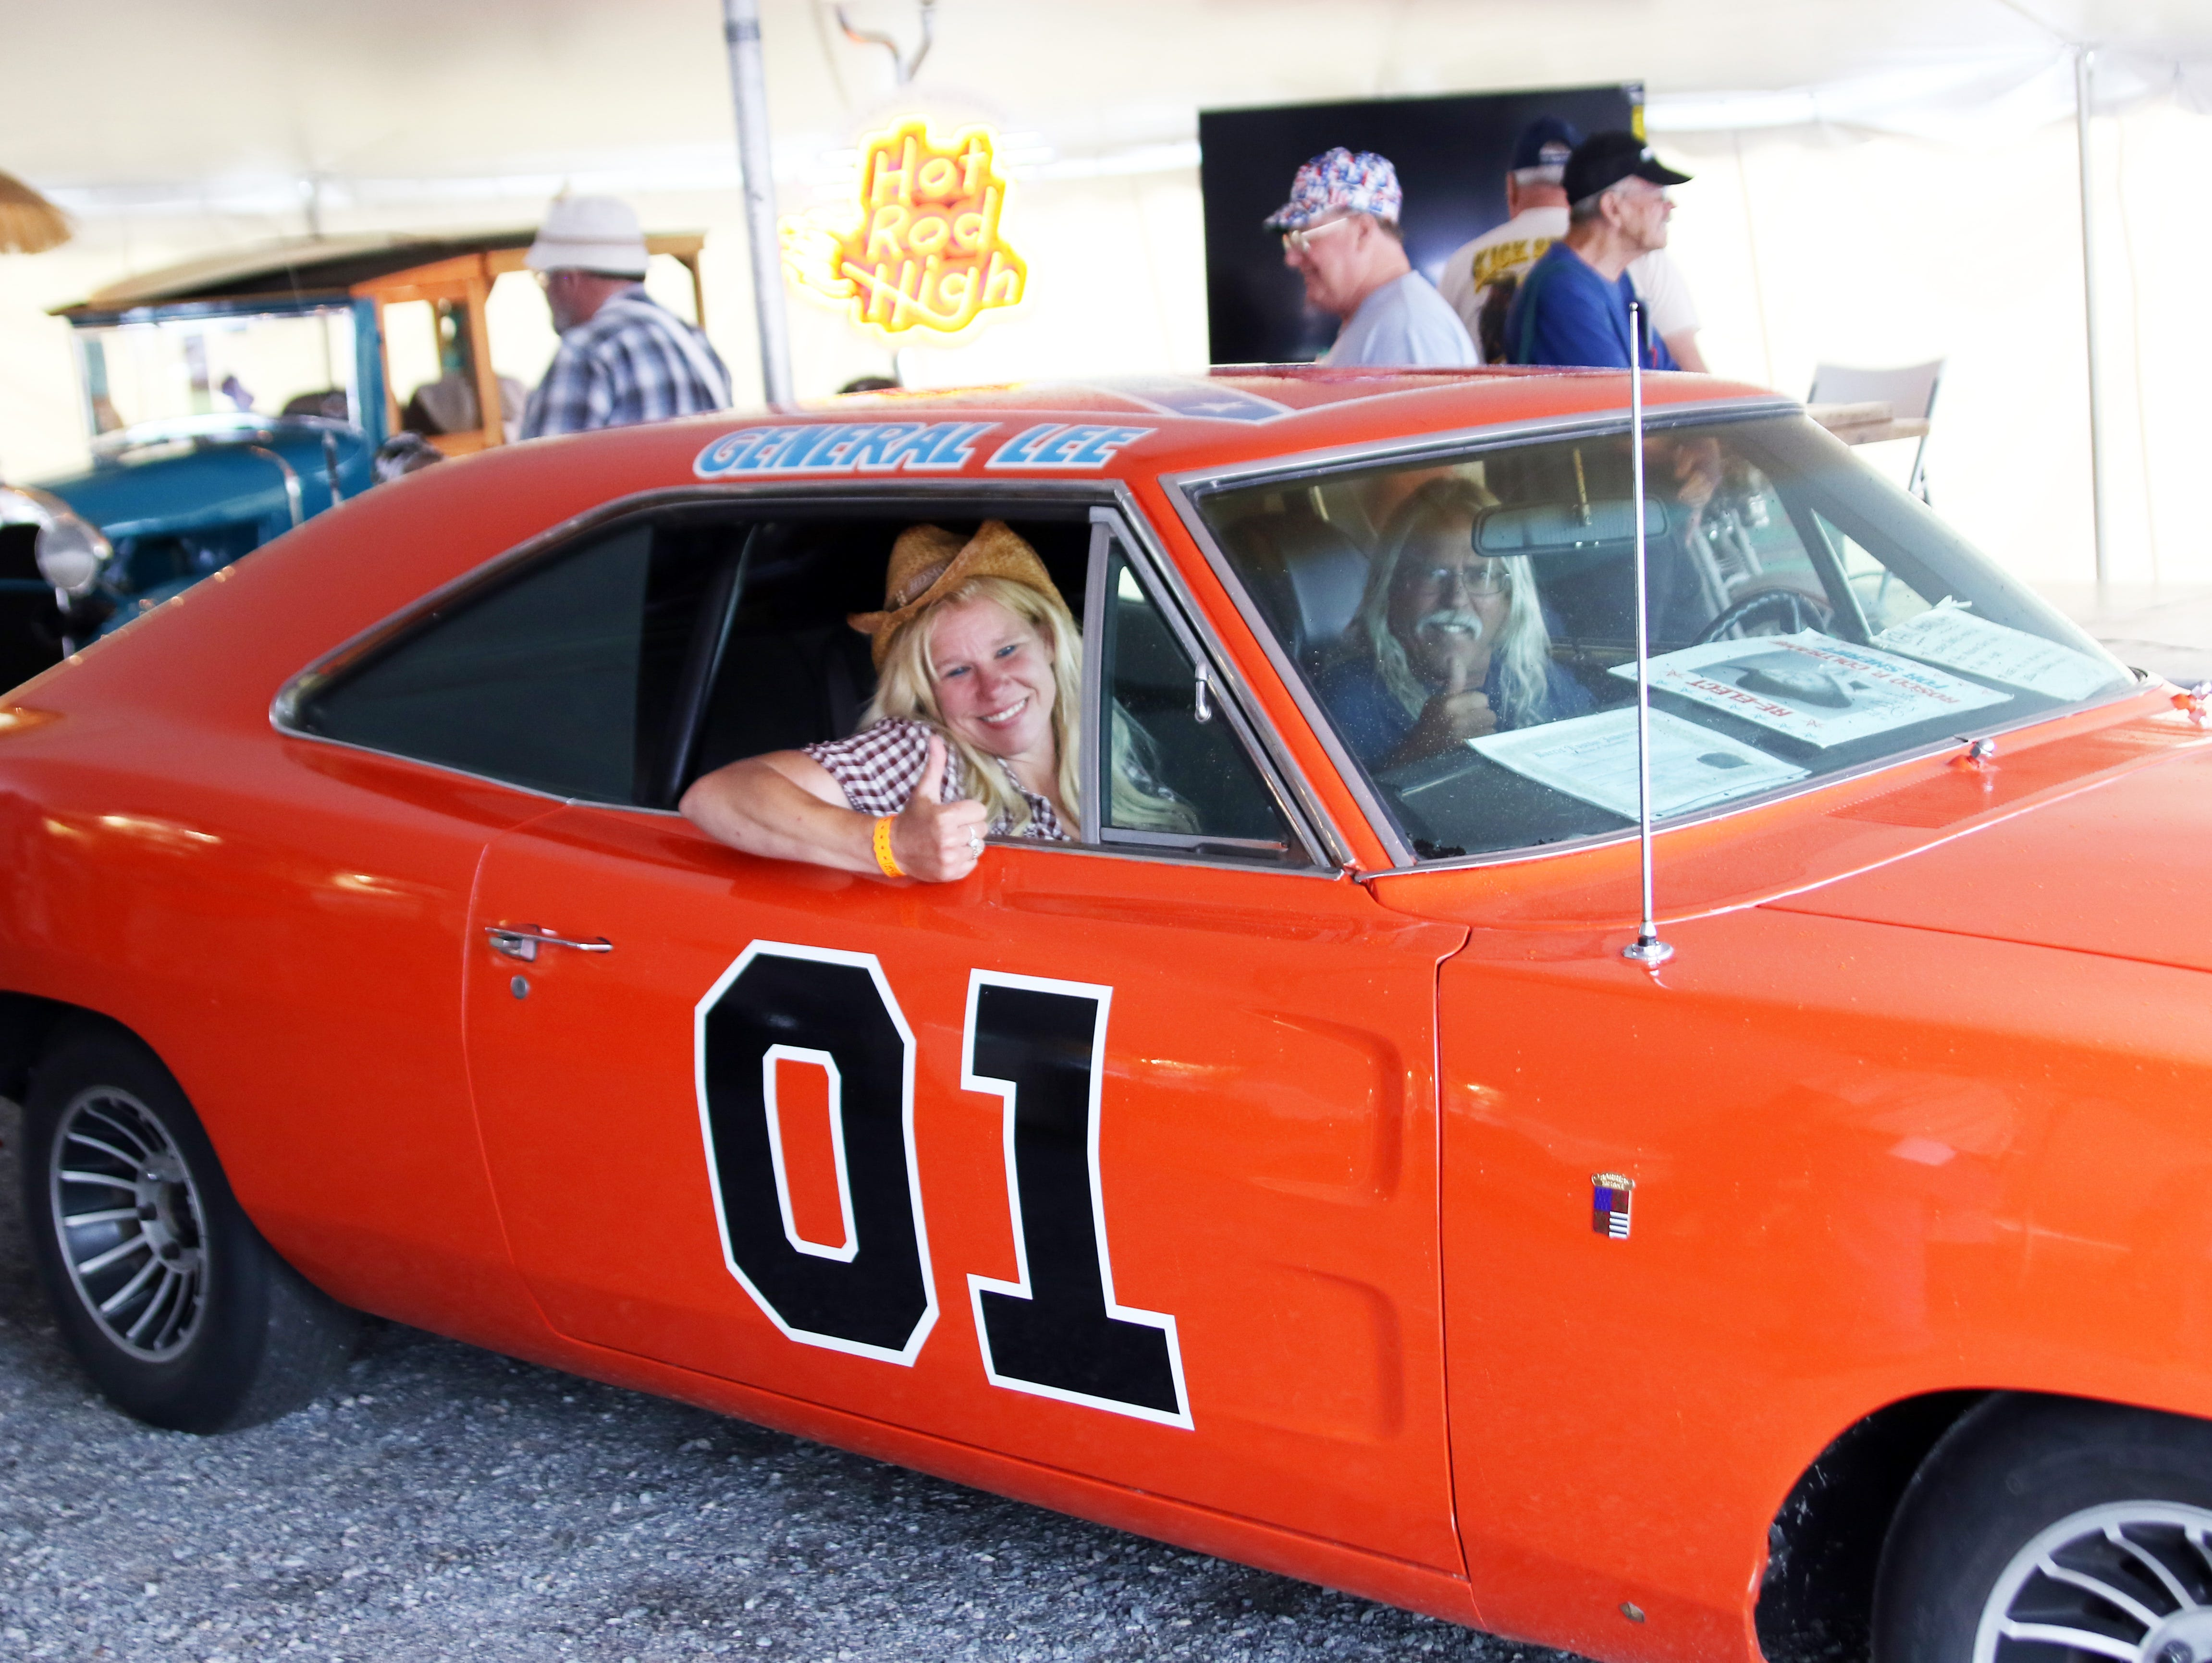 Get 50% off tickets to the Iola Car Show and Swap Meet coming July 6th - 8th.